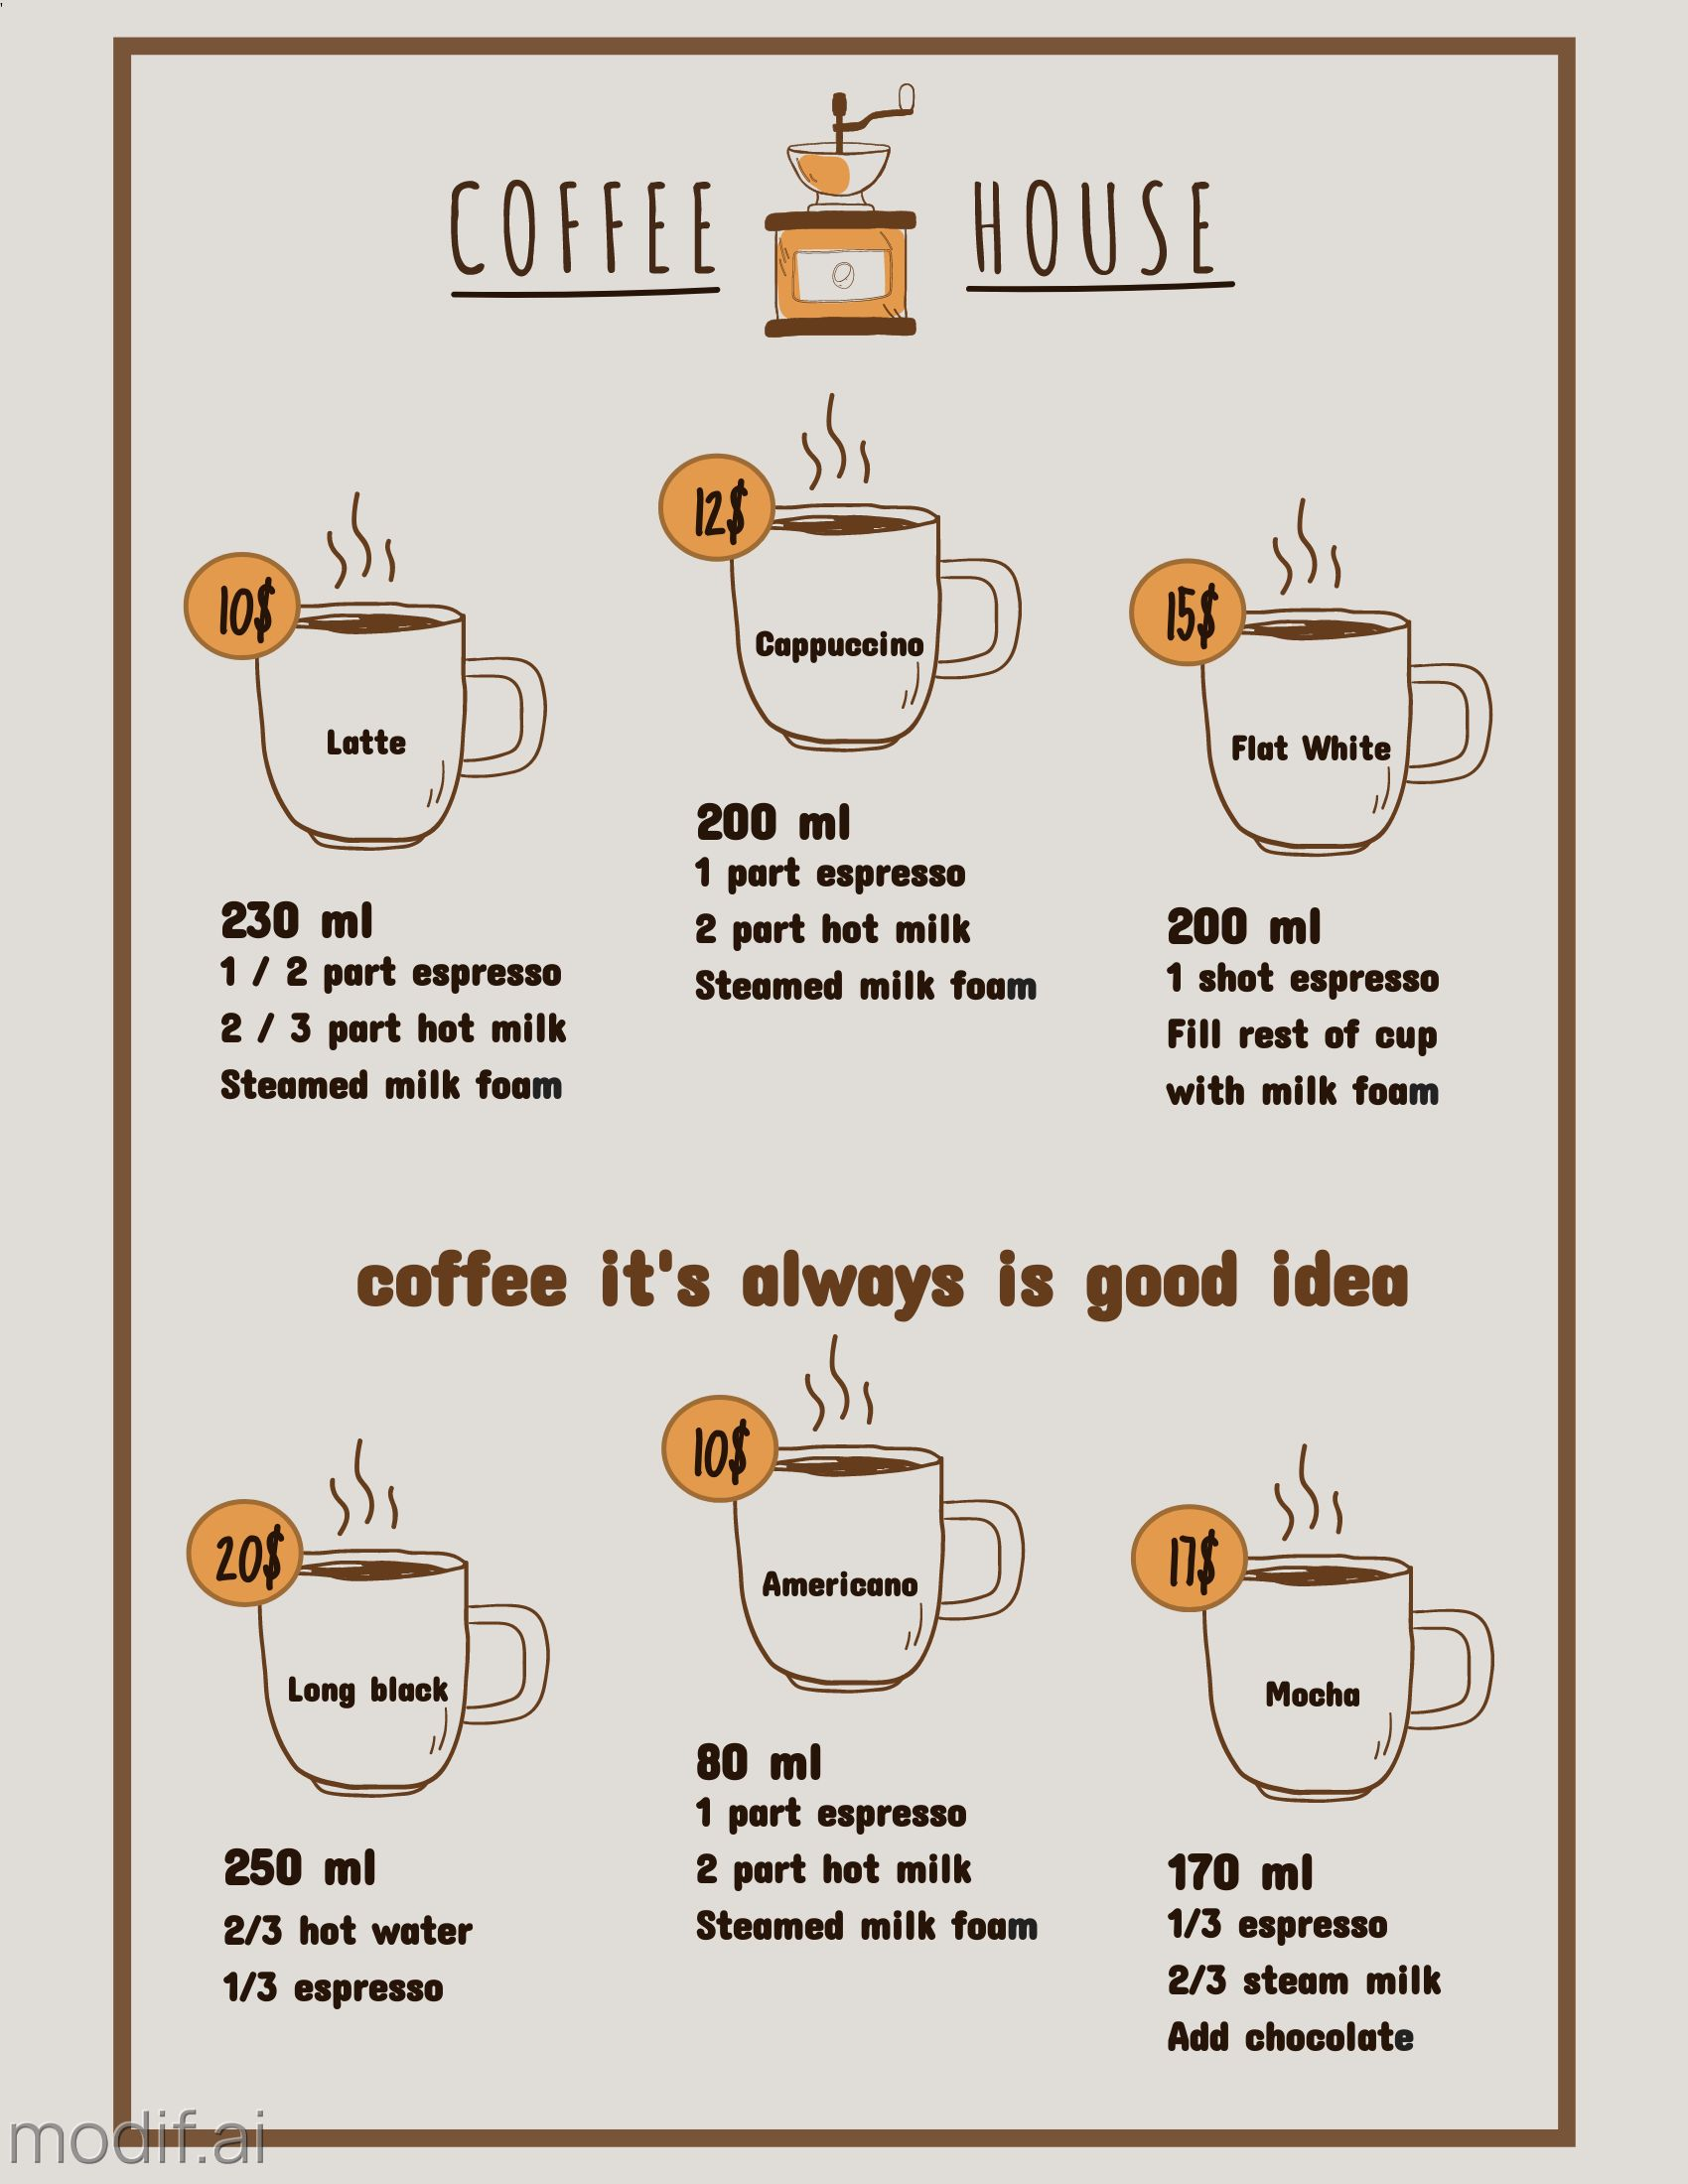 Coffee House Pricing Template